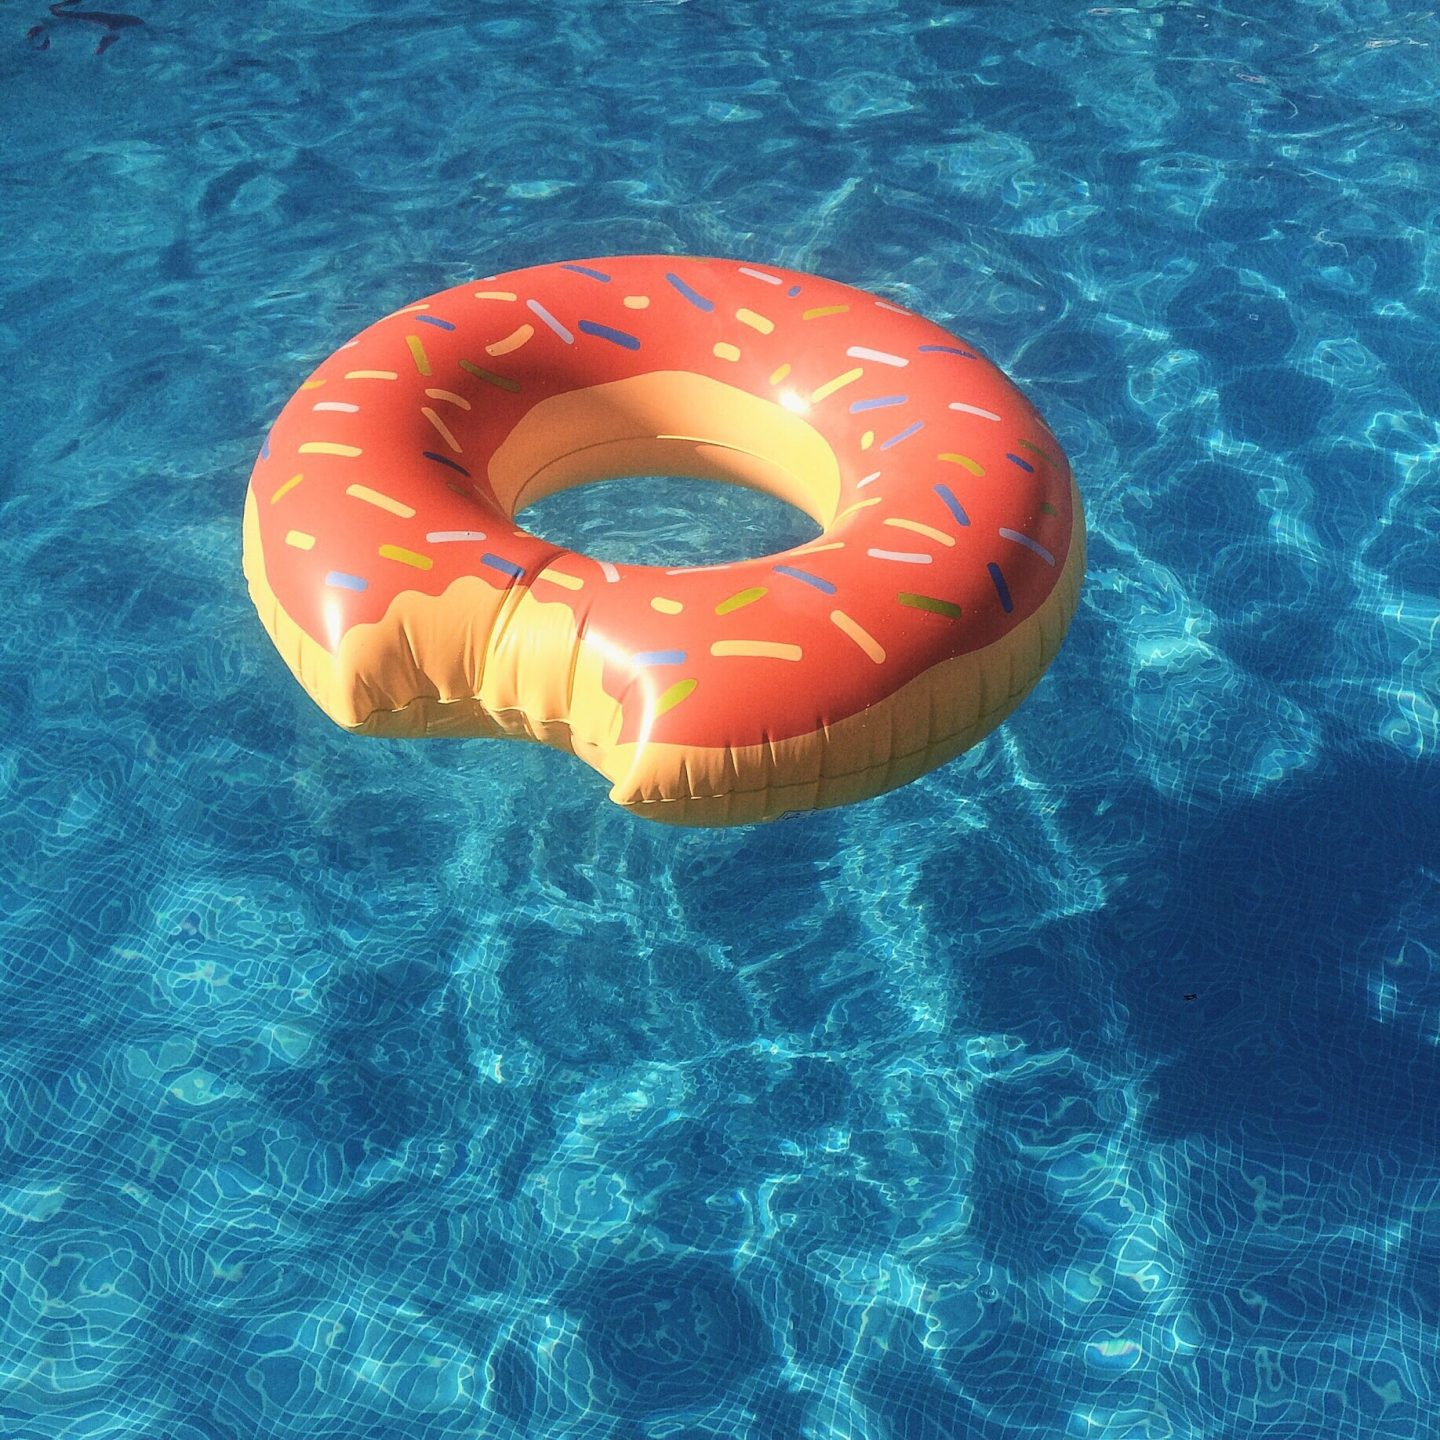 Close-Up Of Donut Shaped Inflatable Ring On Swimming Pool adidas GamePlan A Working outside